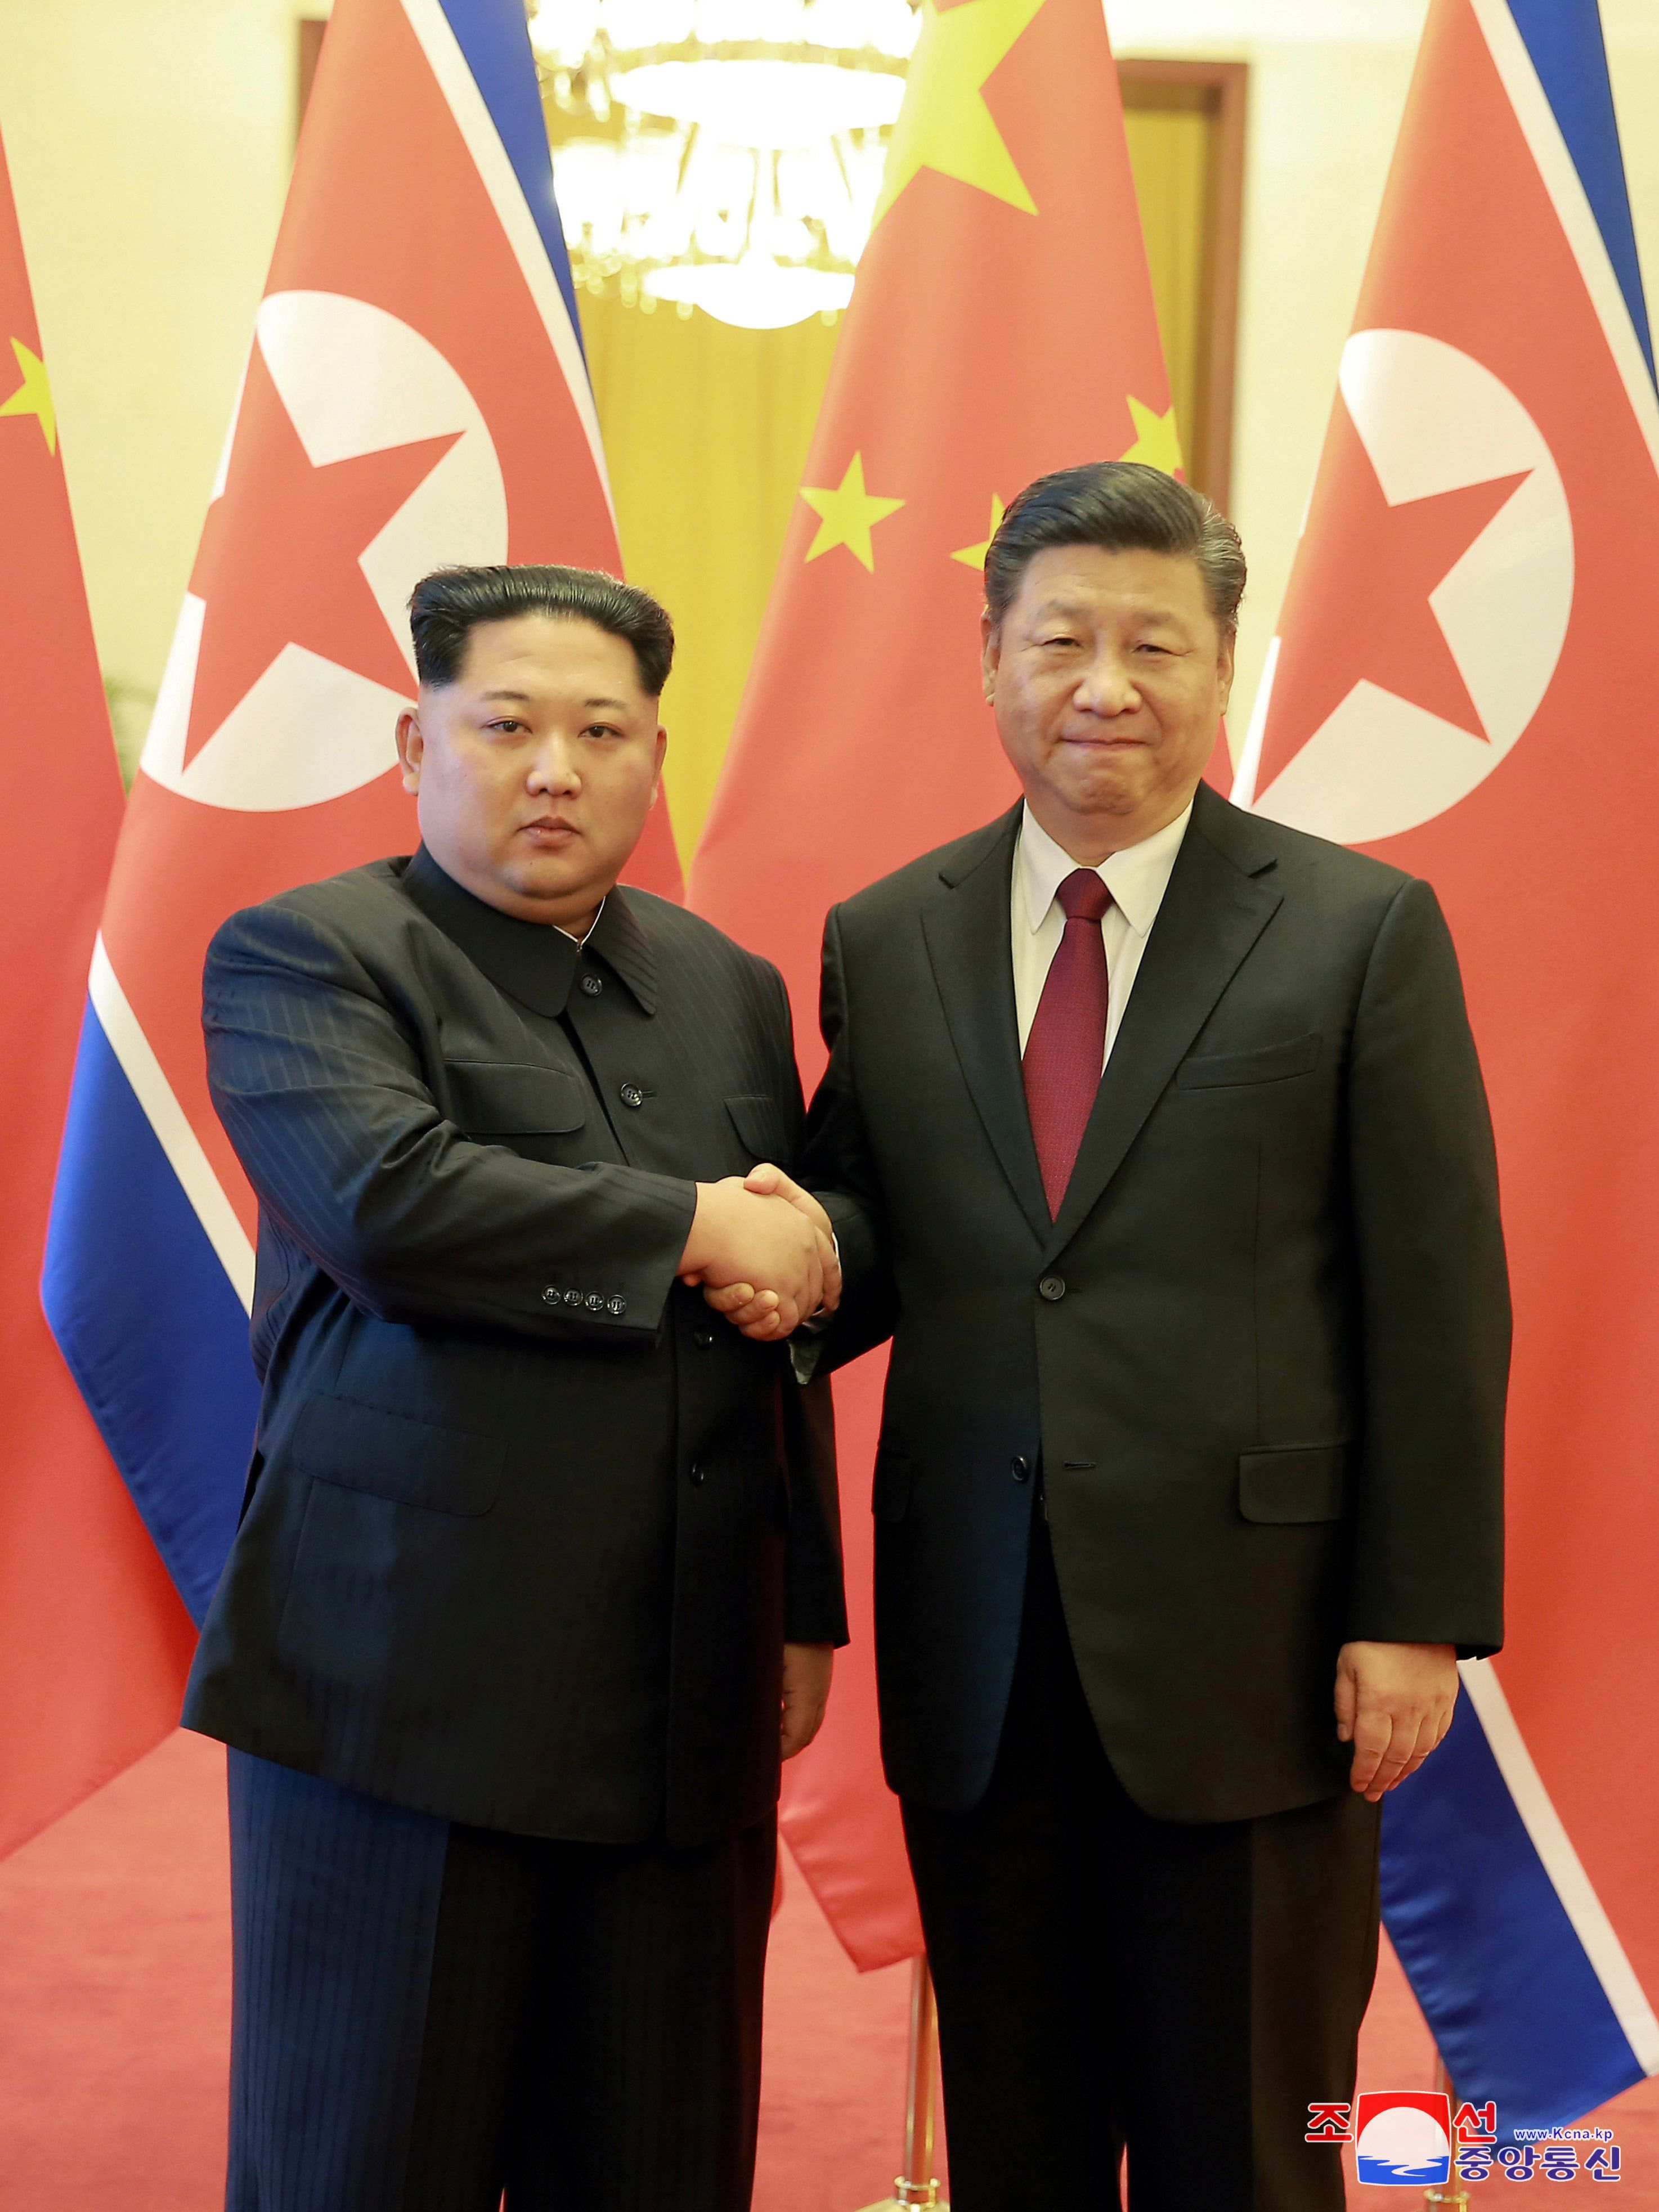 North Korean leader Kim Jong Un shakes hands with Chinese President Xi Jinping as he paid an unofficial visit to Beijing, China, in this undated photo released by North Korea's Korean Central News Agency (KCNA) in Pyongyang March 28, 2018. KCNA/via Reuters ATTENTION EDITORS - THIS IMAGE WAS PROVIDED BY A THIRD PARTY. REUTERS IS UNABLE TO INDEPENDENTLY VERIFY THIS IMAGE. NO THIRD PARTY SALES. NOT FOR USE BY REUTERS THIRD PARTY DISTRIBUTORS. SOUTH KOREA OUT. NO COMMERCIAL OR EDITORIAL SALES IN SOUTH KOREA.